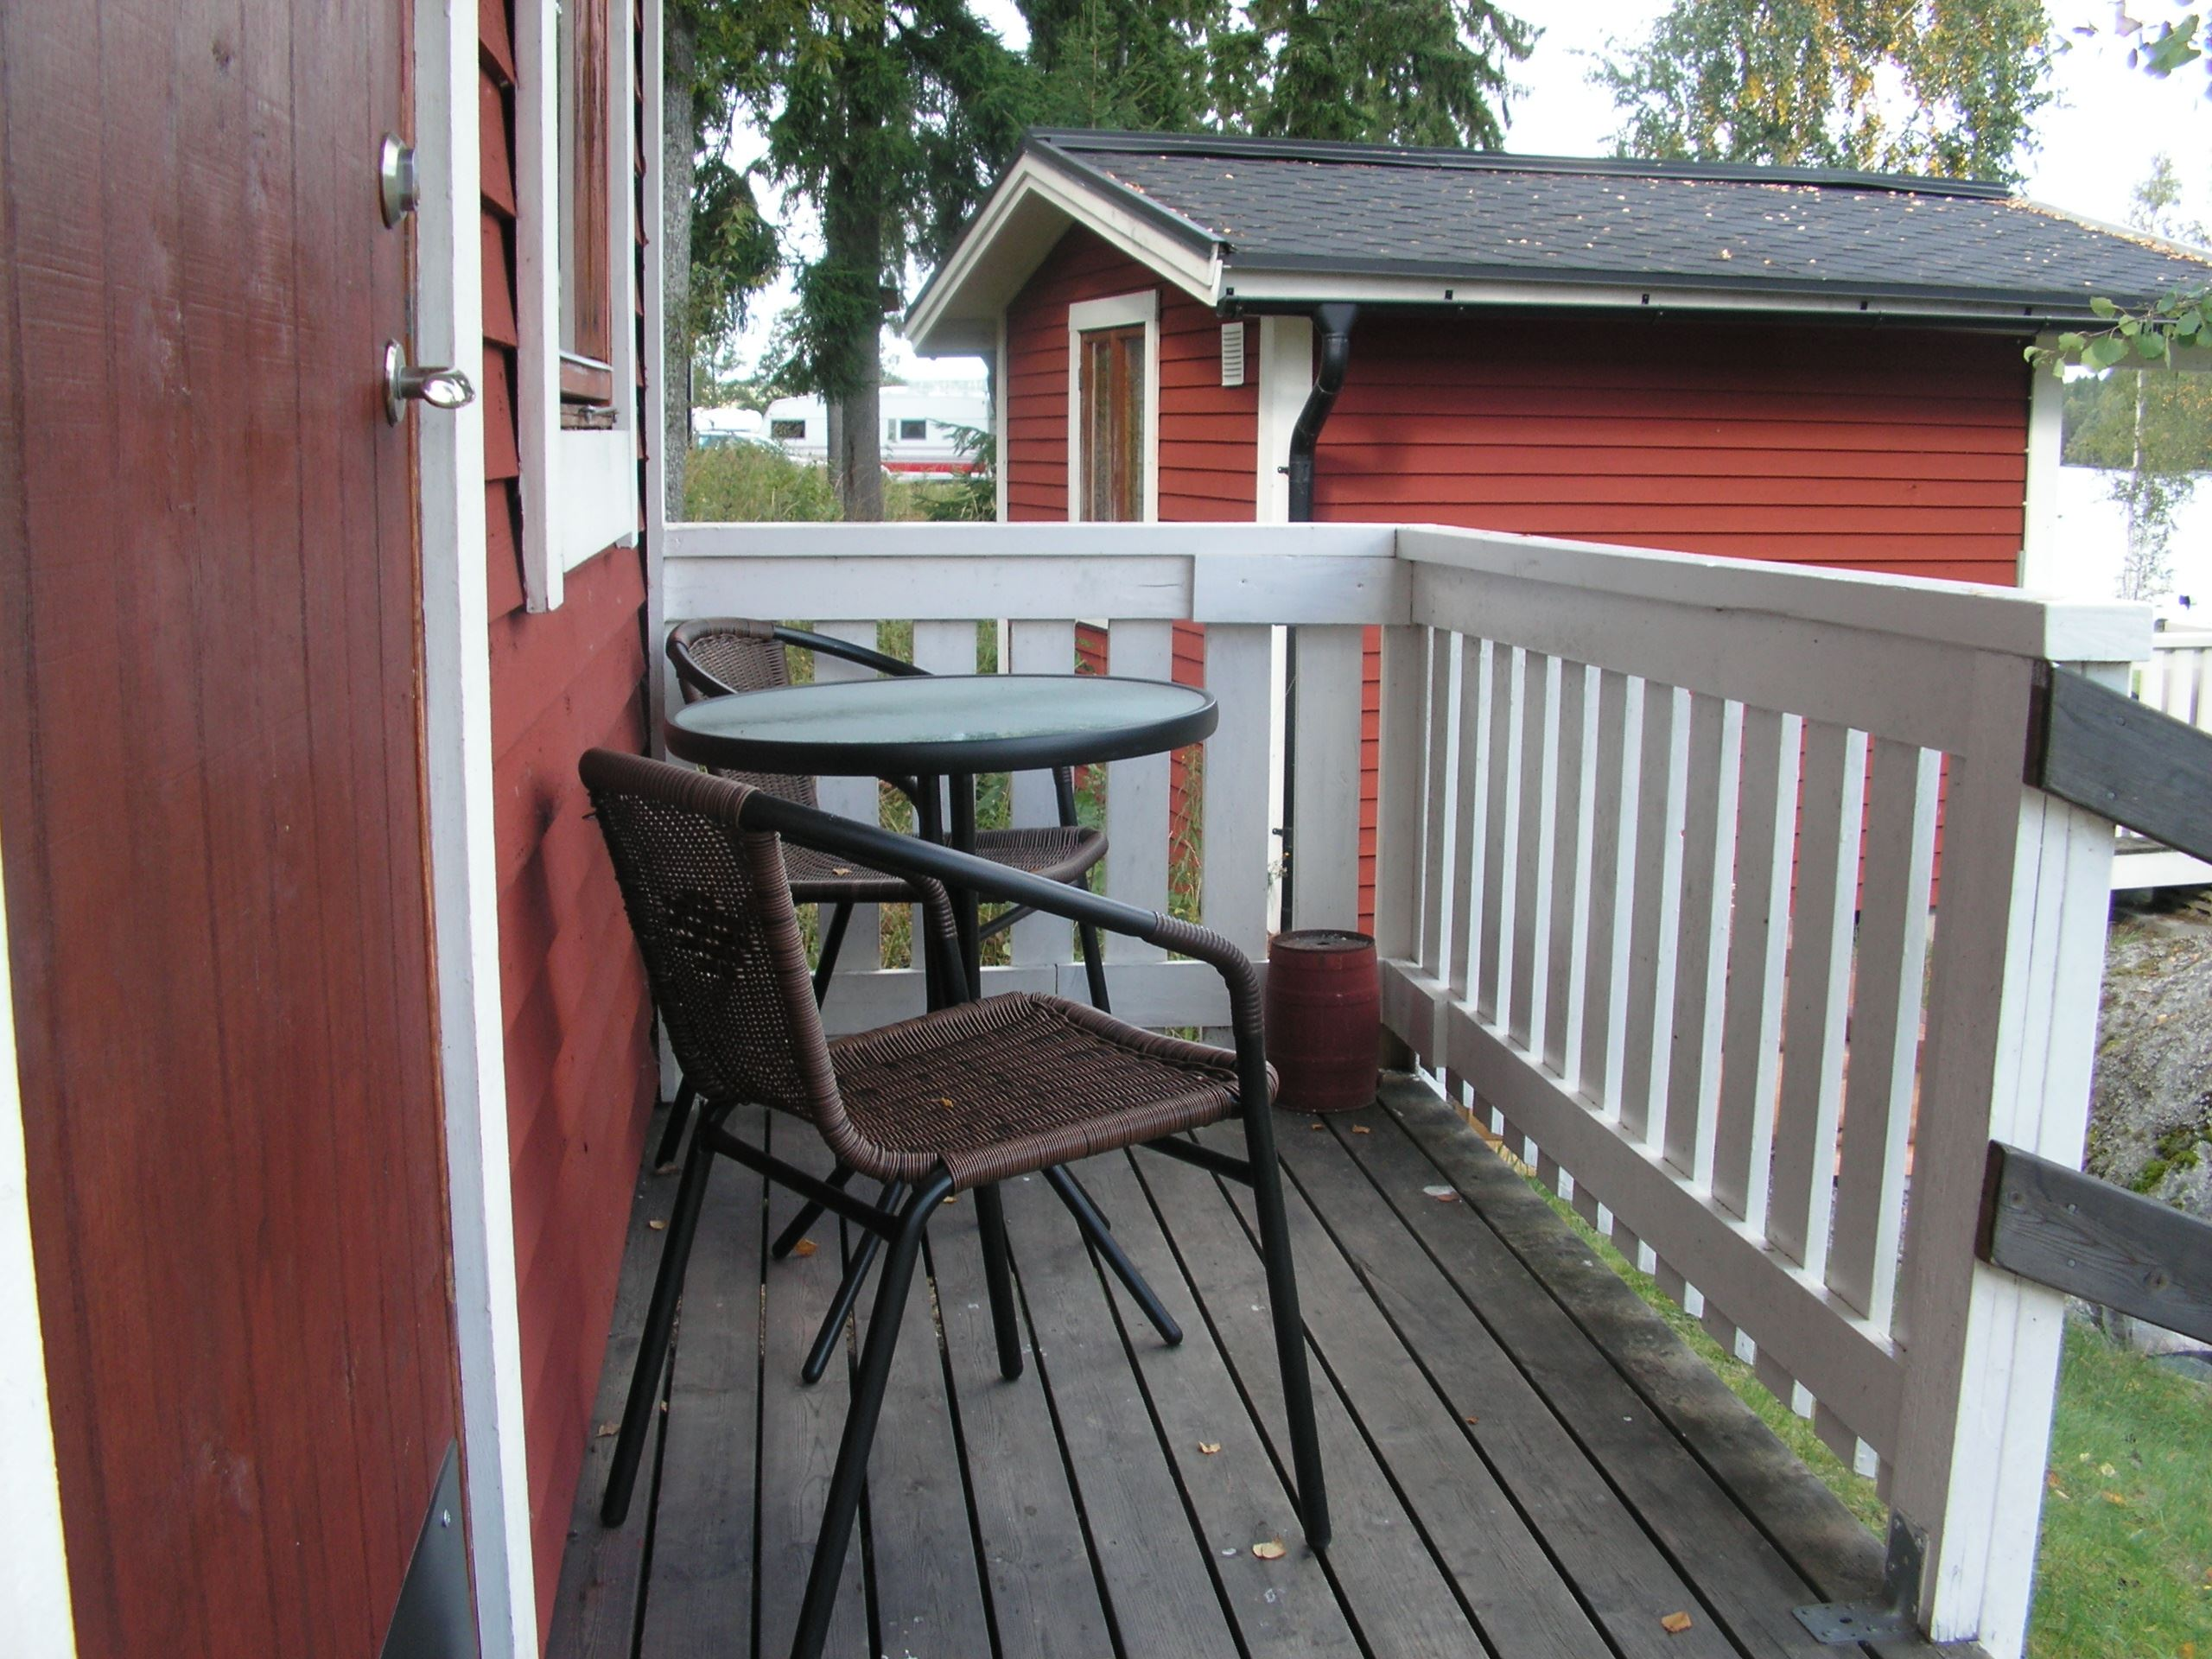 Munkebergs Campsite and Cottages, SVIF Filipstad